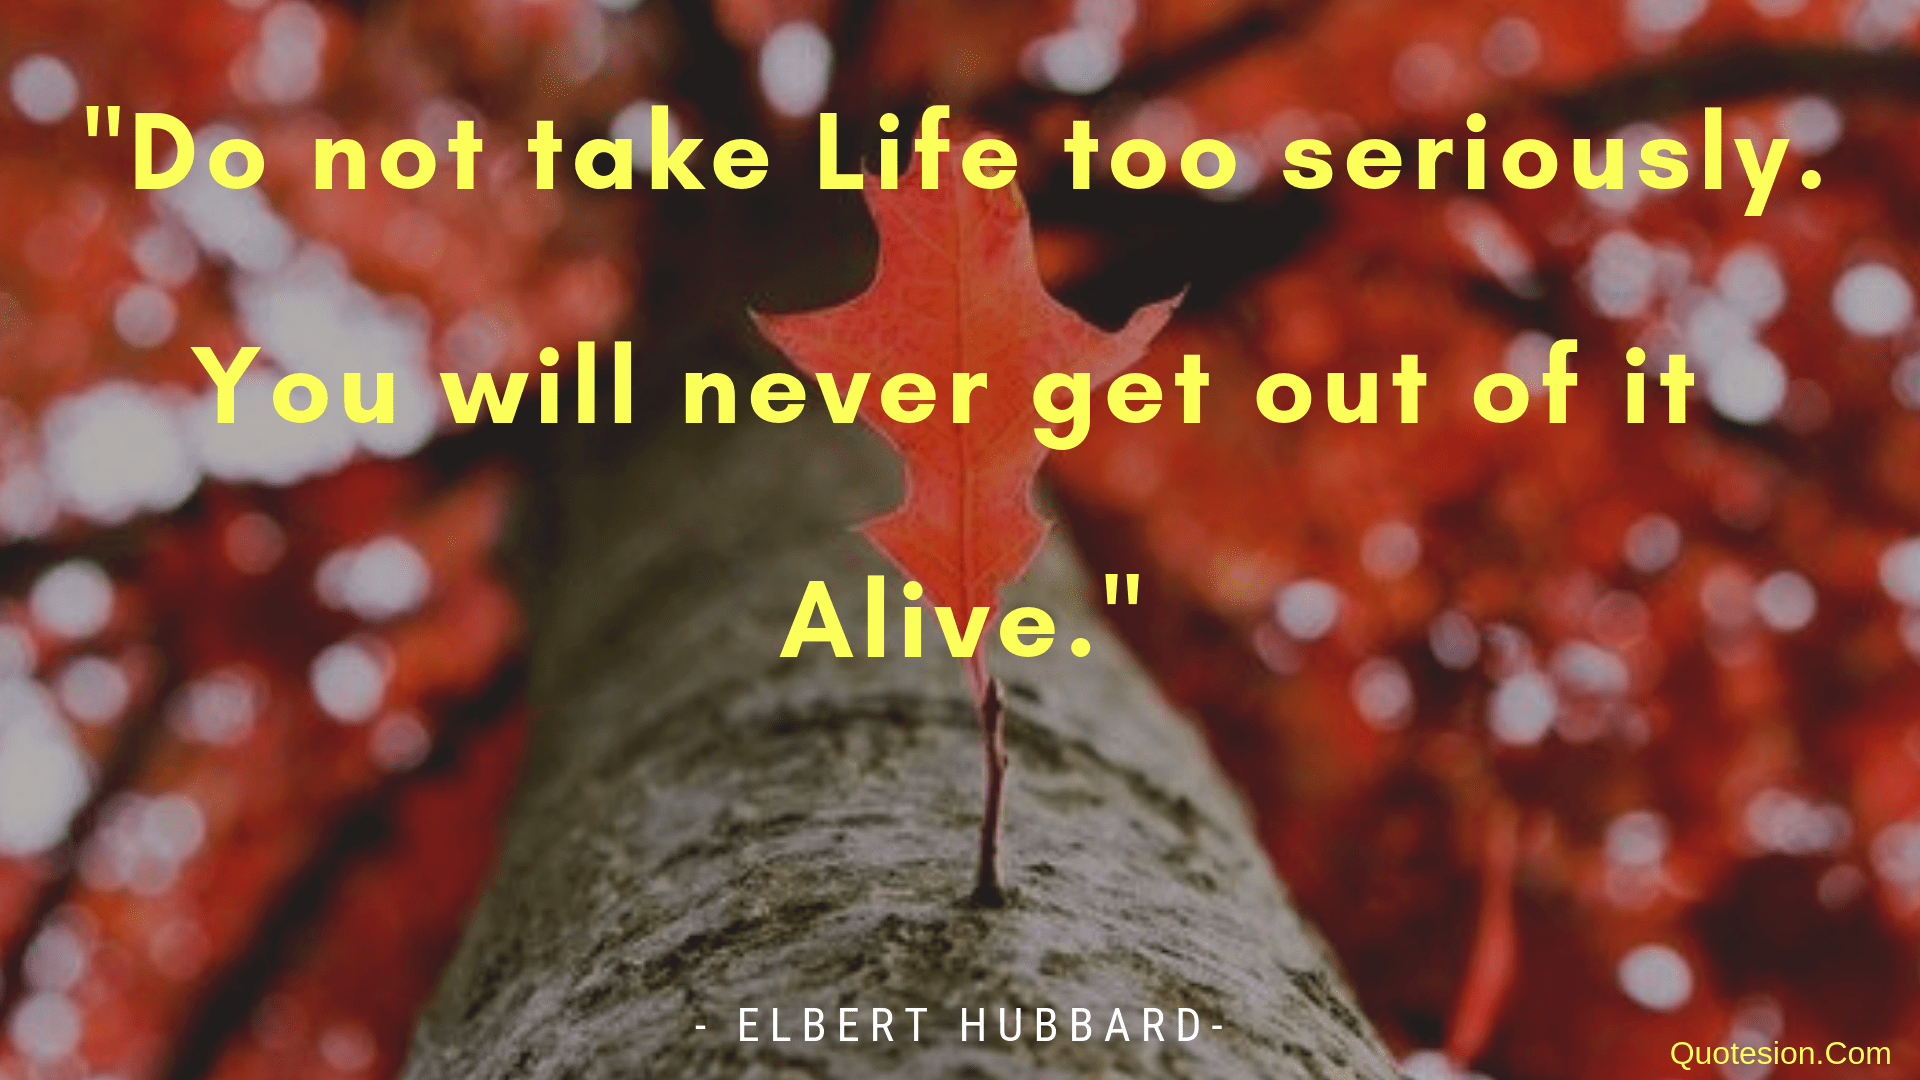 """Do not take life Too Seriously….-Elbert Hubbard- [1920×1080]"